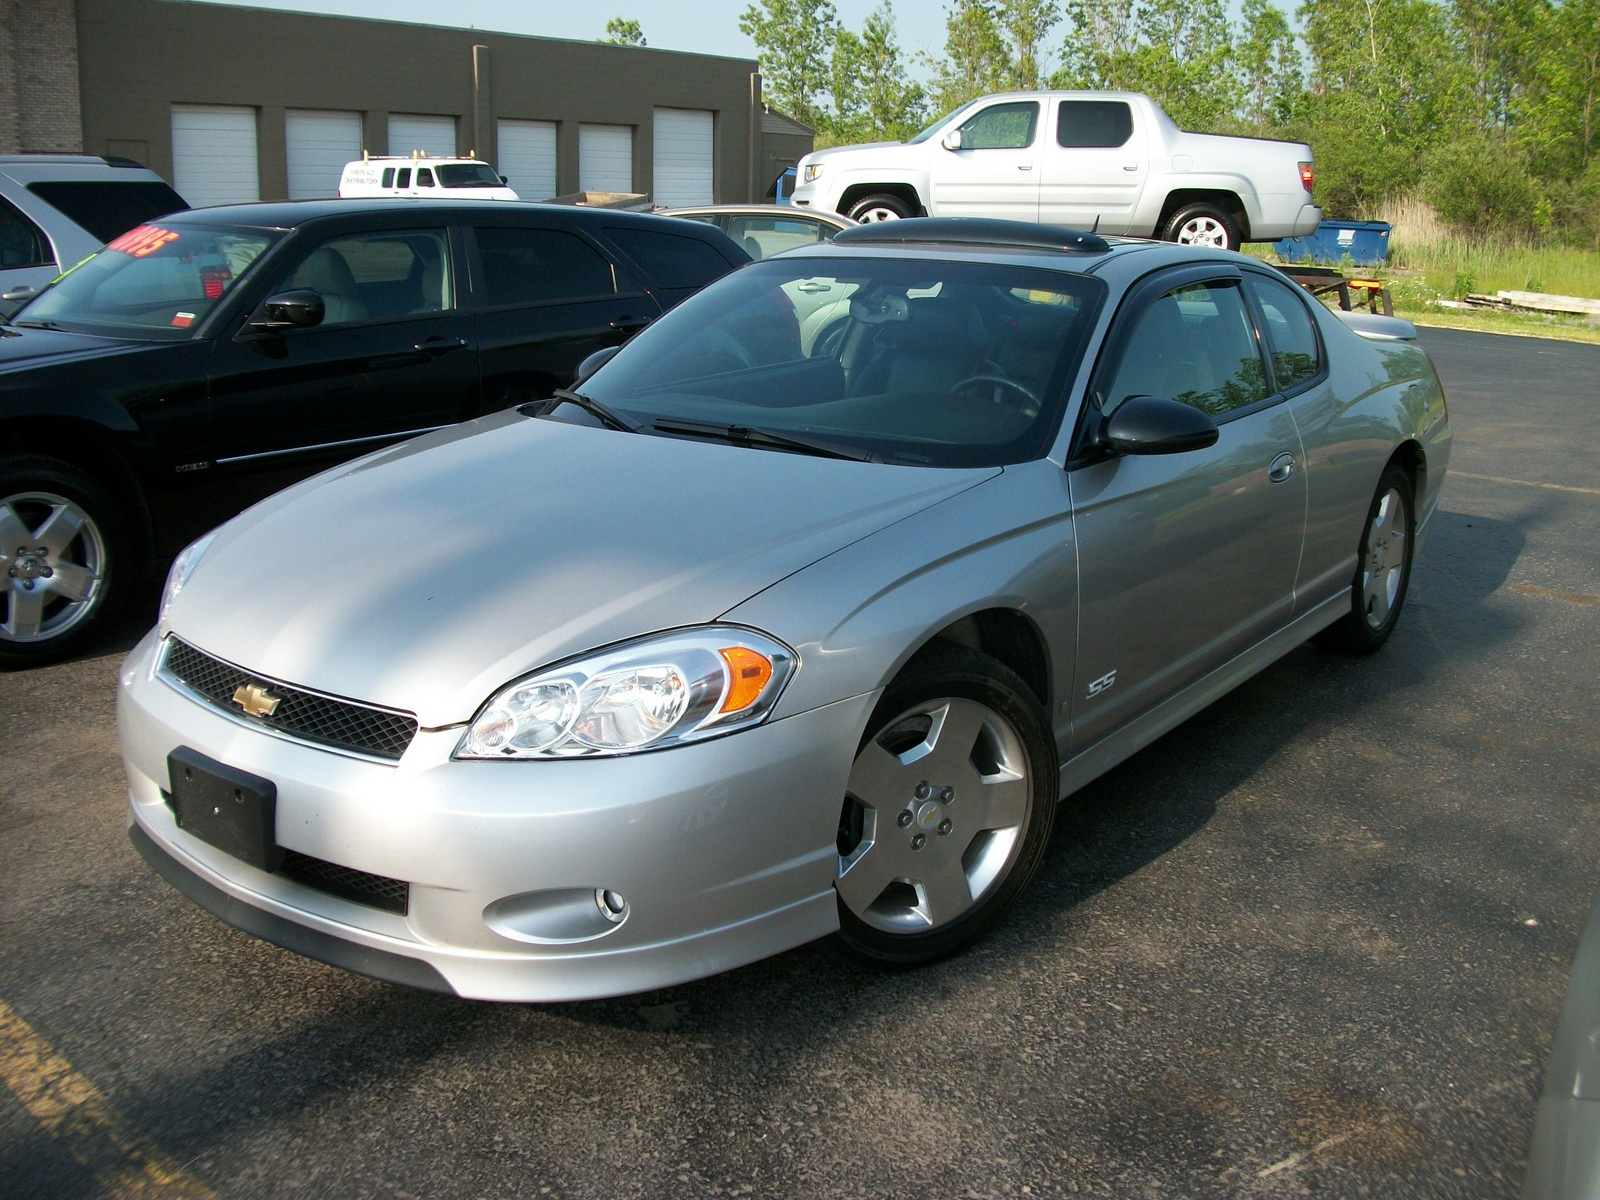 2007 chevrolet monte carlo ss for sale cargurus autos post. Black Bedroom Furniture Sets. Home Design Ideas